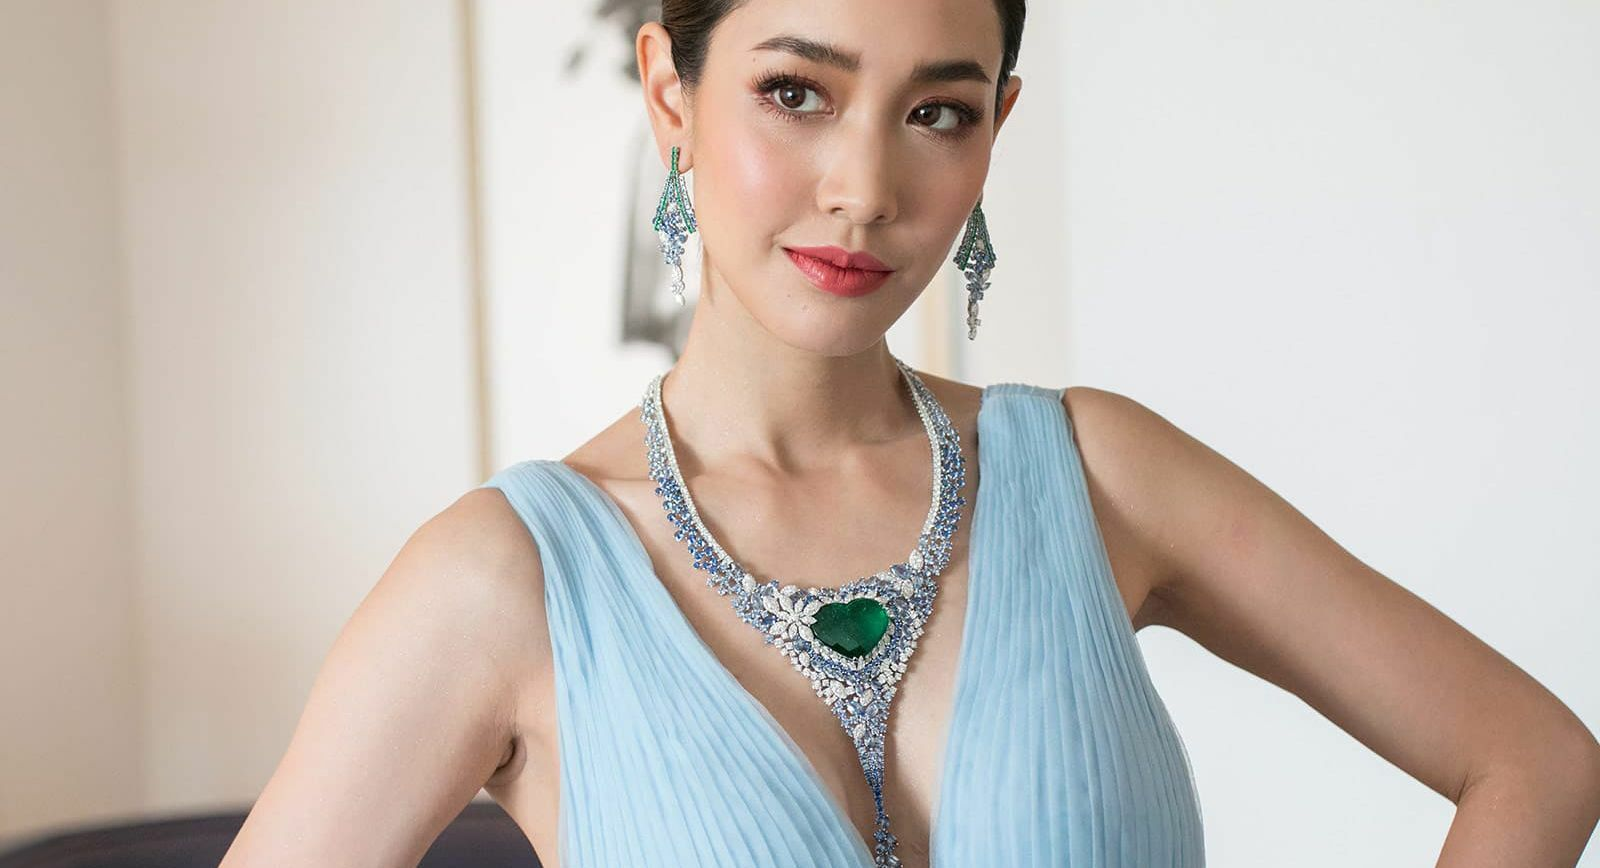 Avakian necklace with a 40-carat heart-shaped Colombian emerald, worn by Thai actress Peechaya Wattanamontree